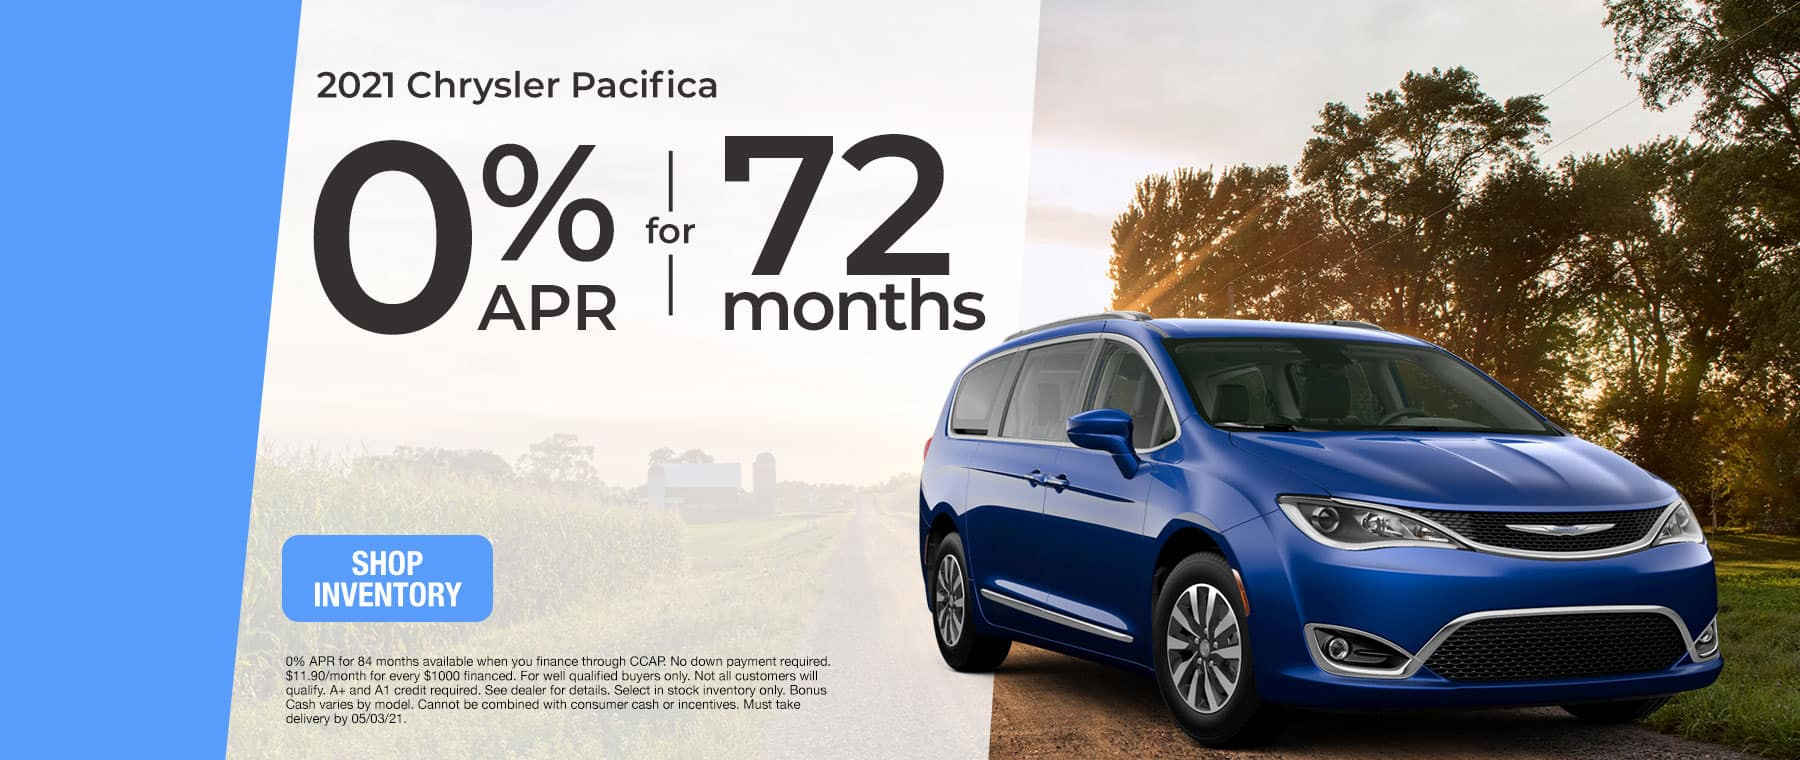 2021 Chrysler Pacifica - 0% APR for 72 Months